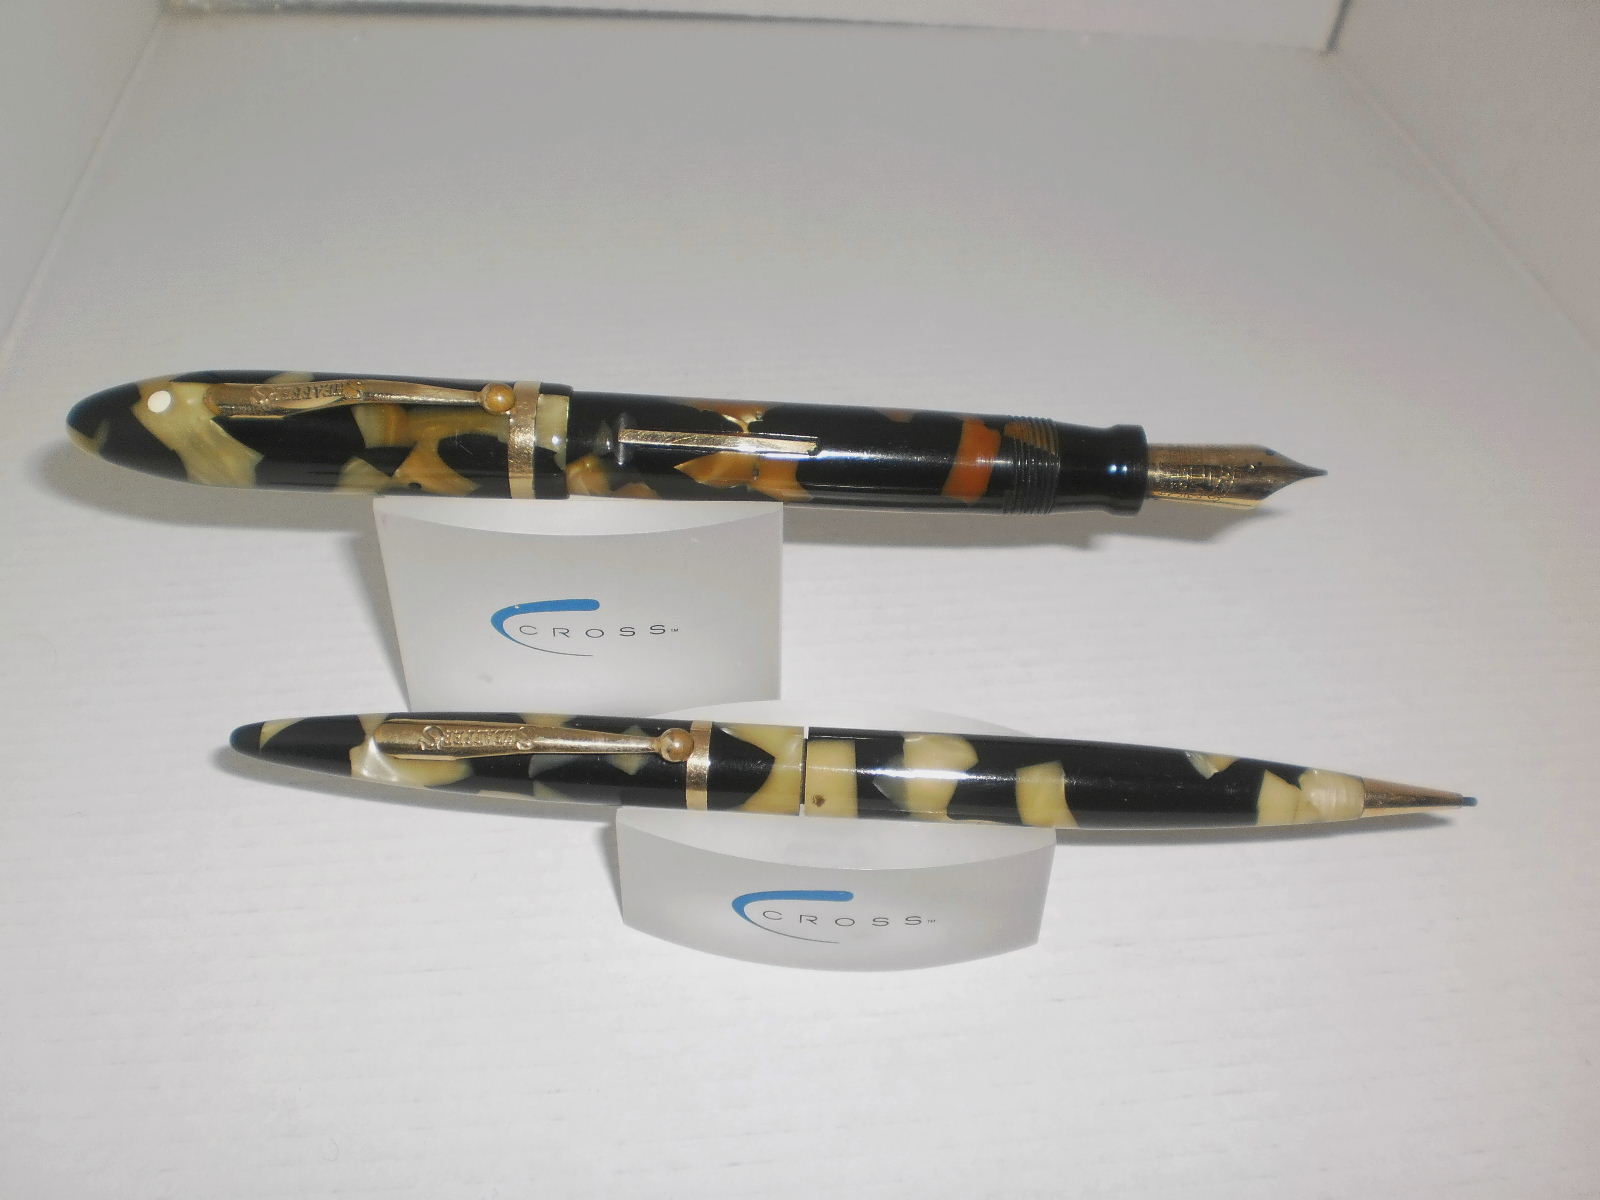 sheaffer set oversize0085.JPG